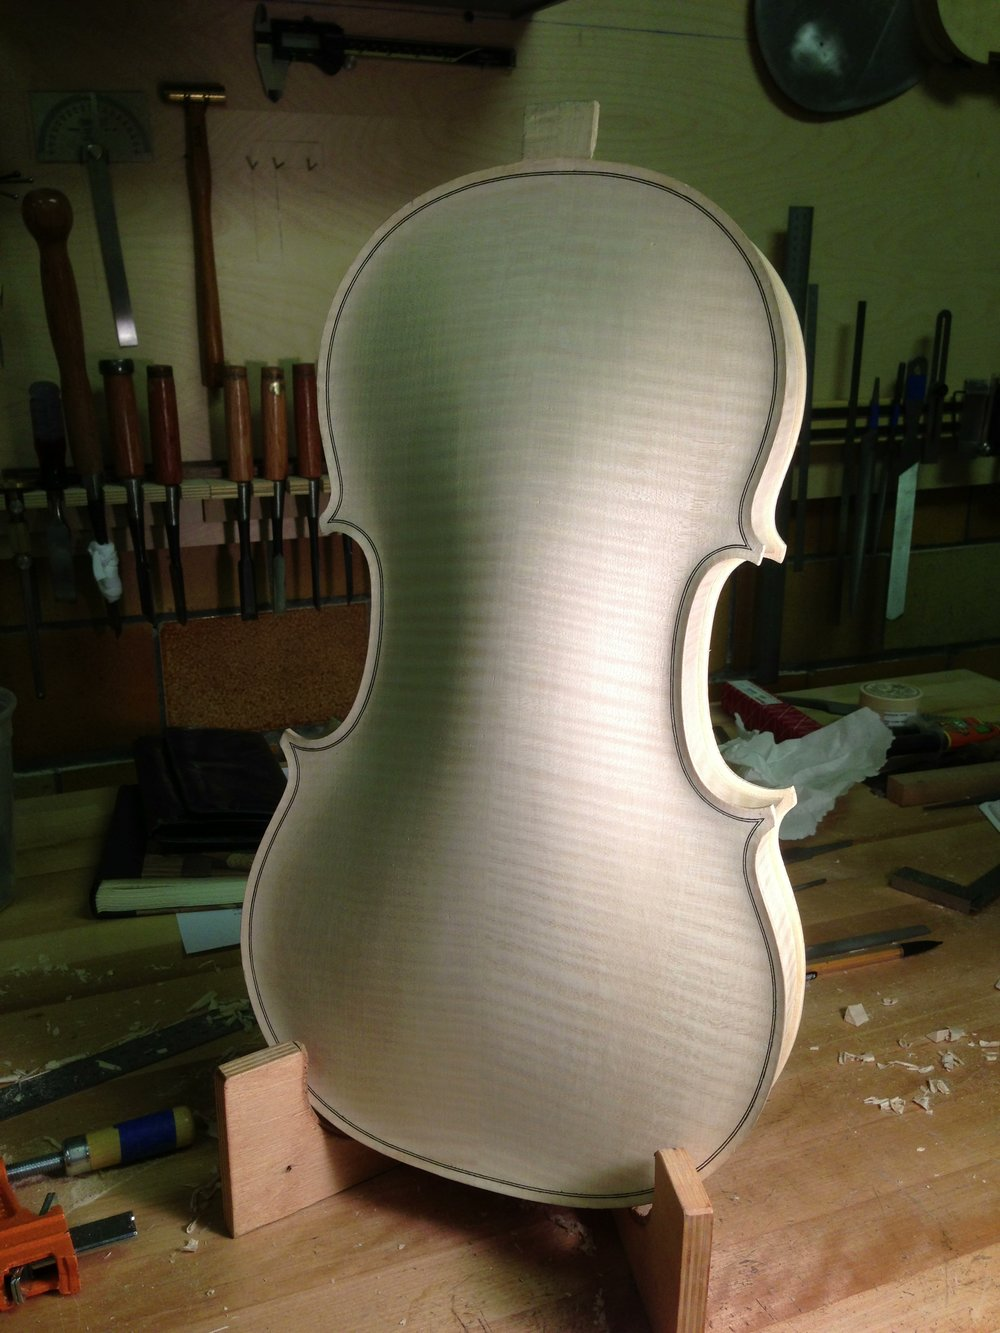 No. 4 - Completed body